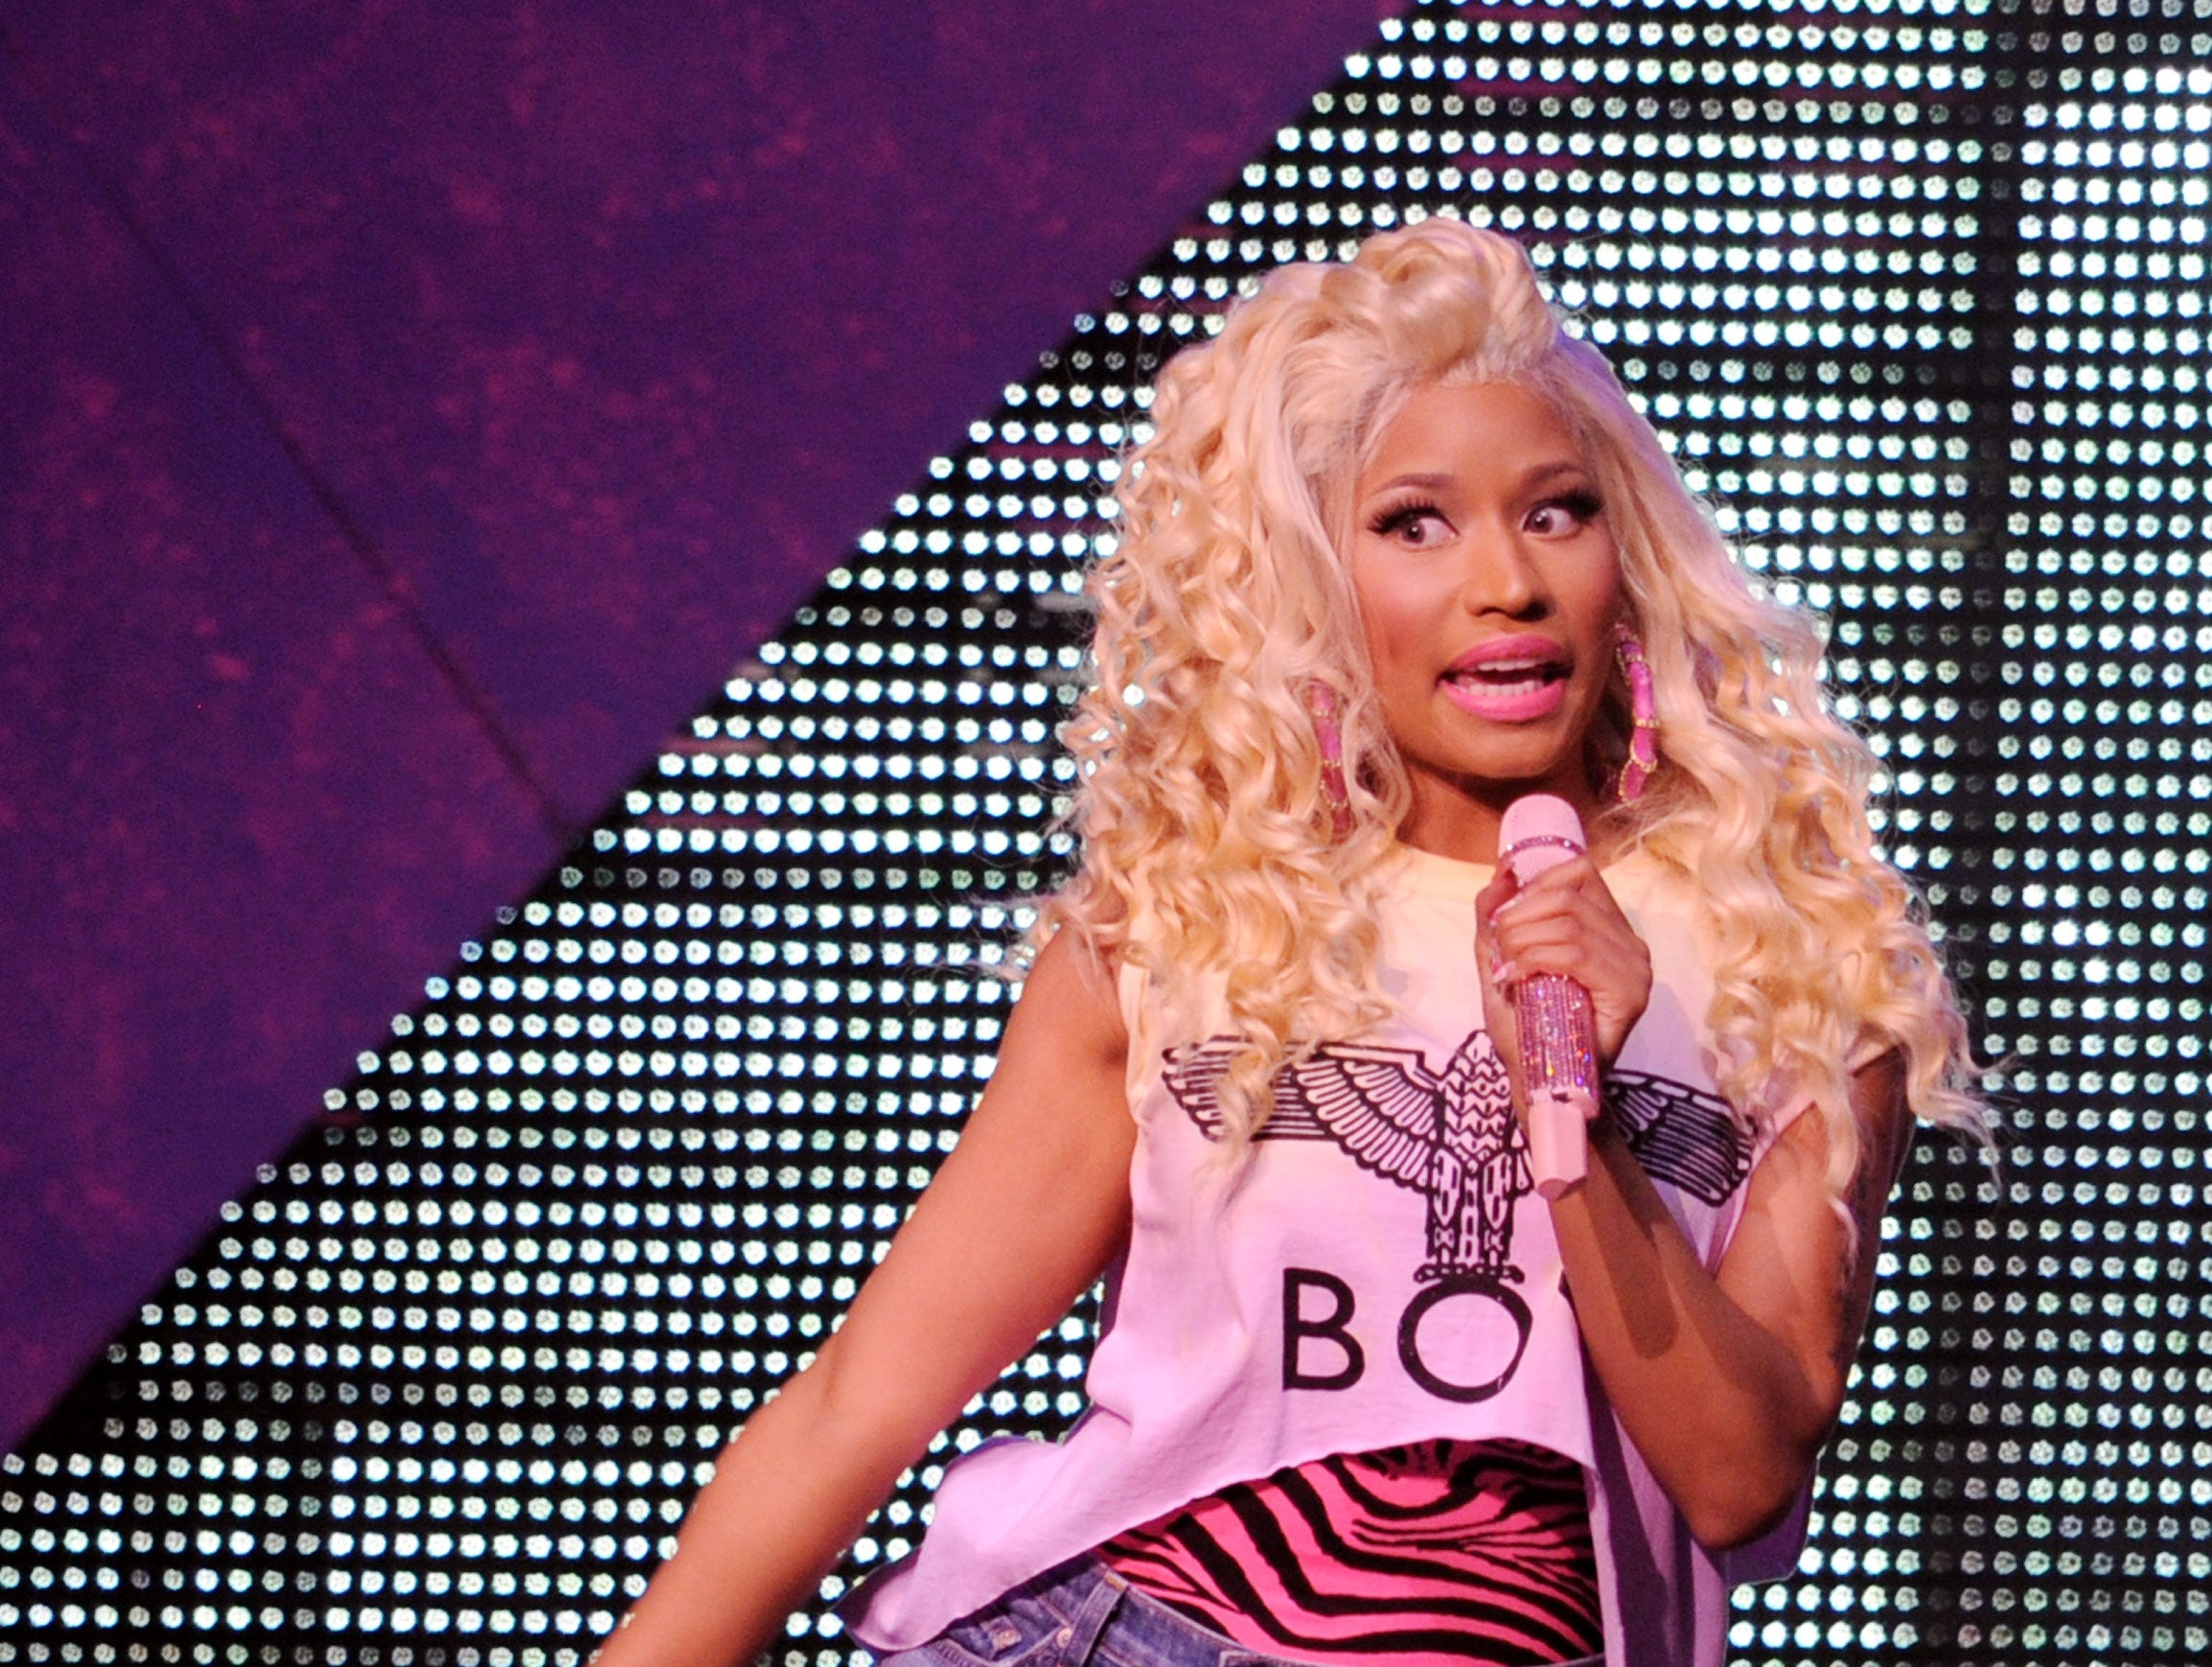 LOS ANGELES, CA - AUGUST 08:  Singer Nicki Minaj performs at the Nokia Theatre L.A. Live on August 8, 2012 in Los Angeles, California.  (Photo by Kevin Winter/Getty Images) ORG XMIT: 149343858 ORIG FILE ID: 150027886